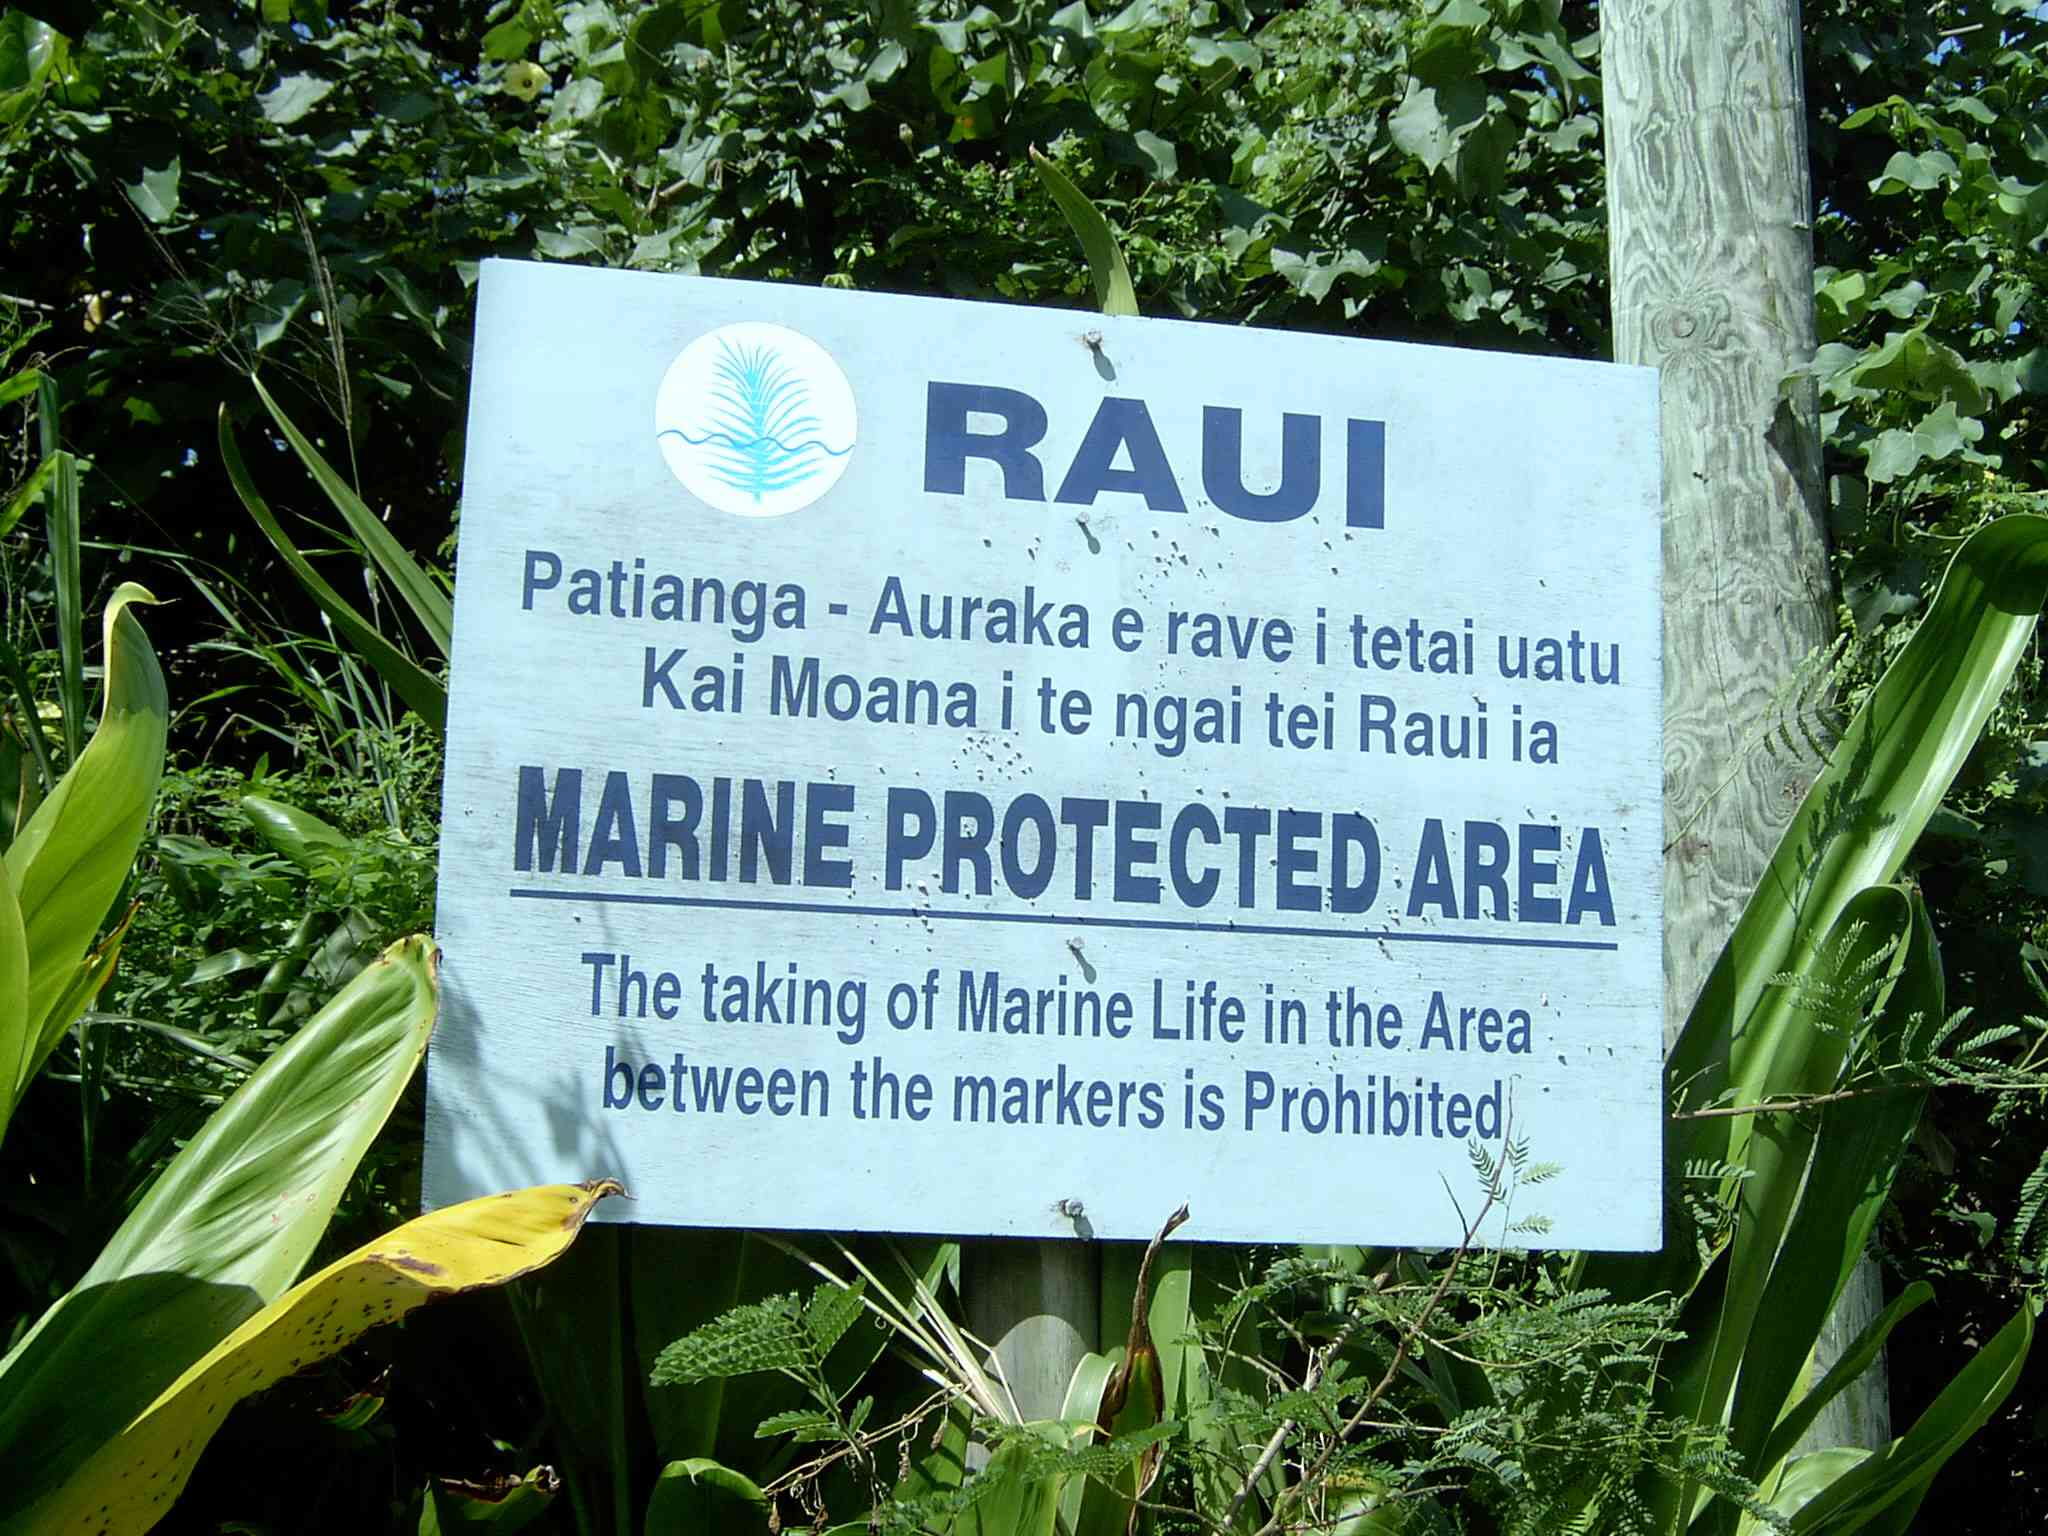 A sign marker for a marine protected area